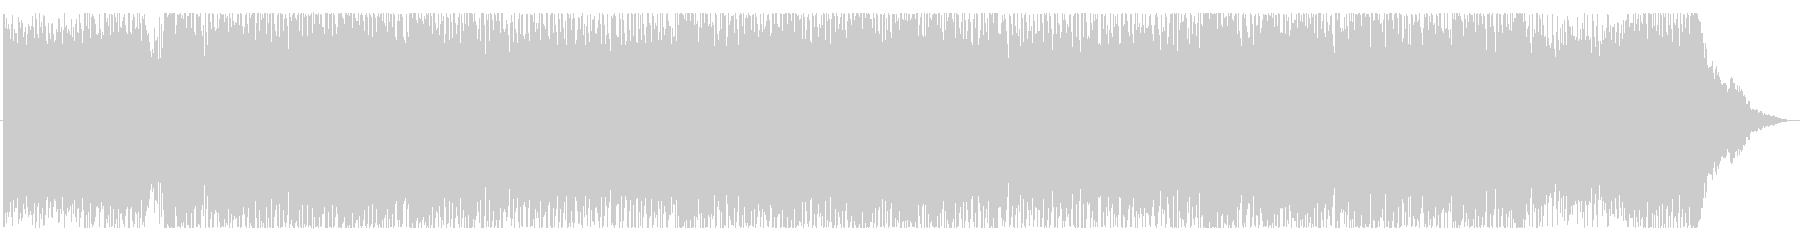 Pops with a refreshing acoustic guitar's unreproduced waveform